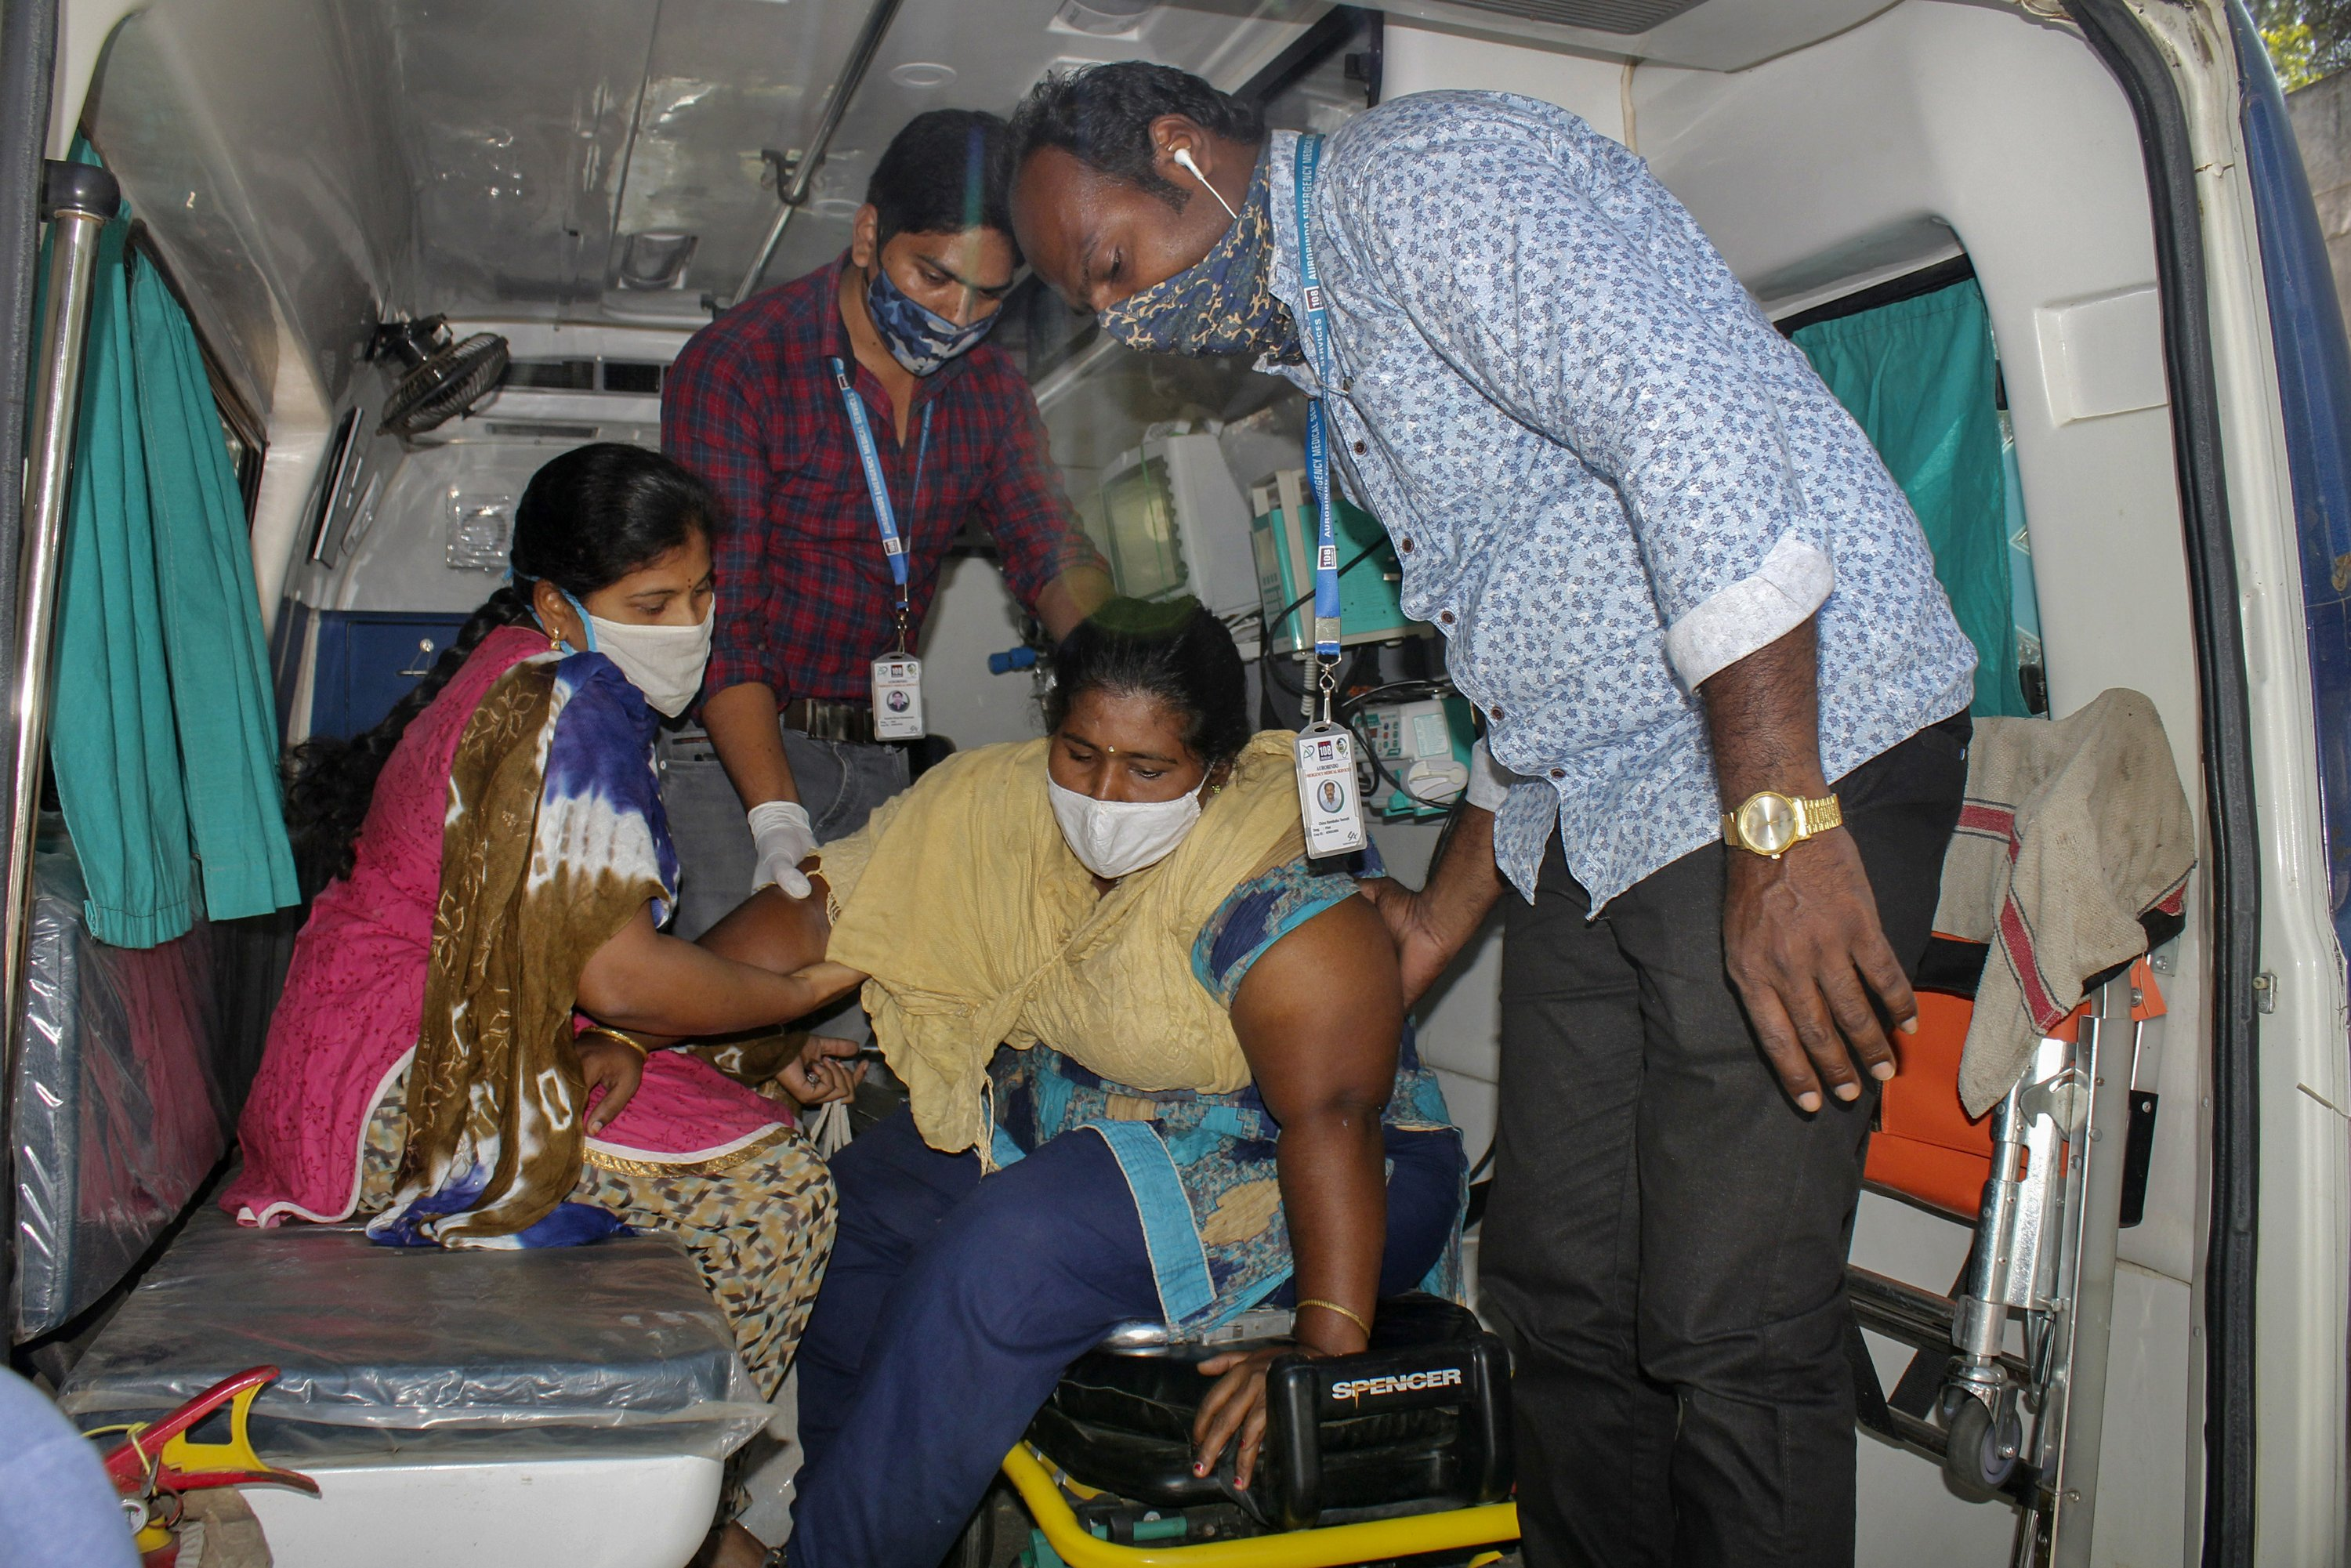 'Nobody knows': Experts baffled by mystery illness in India